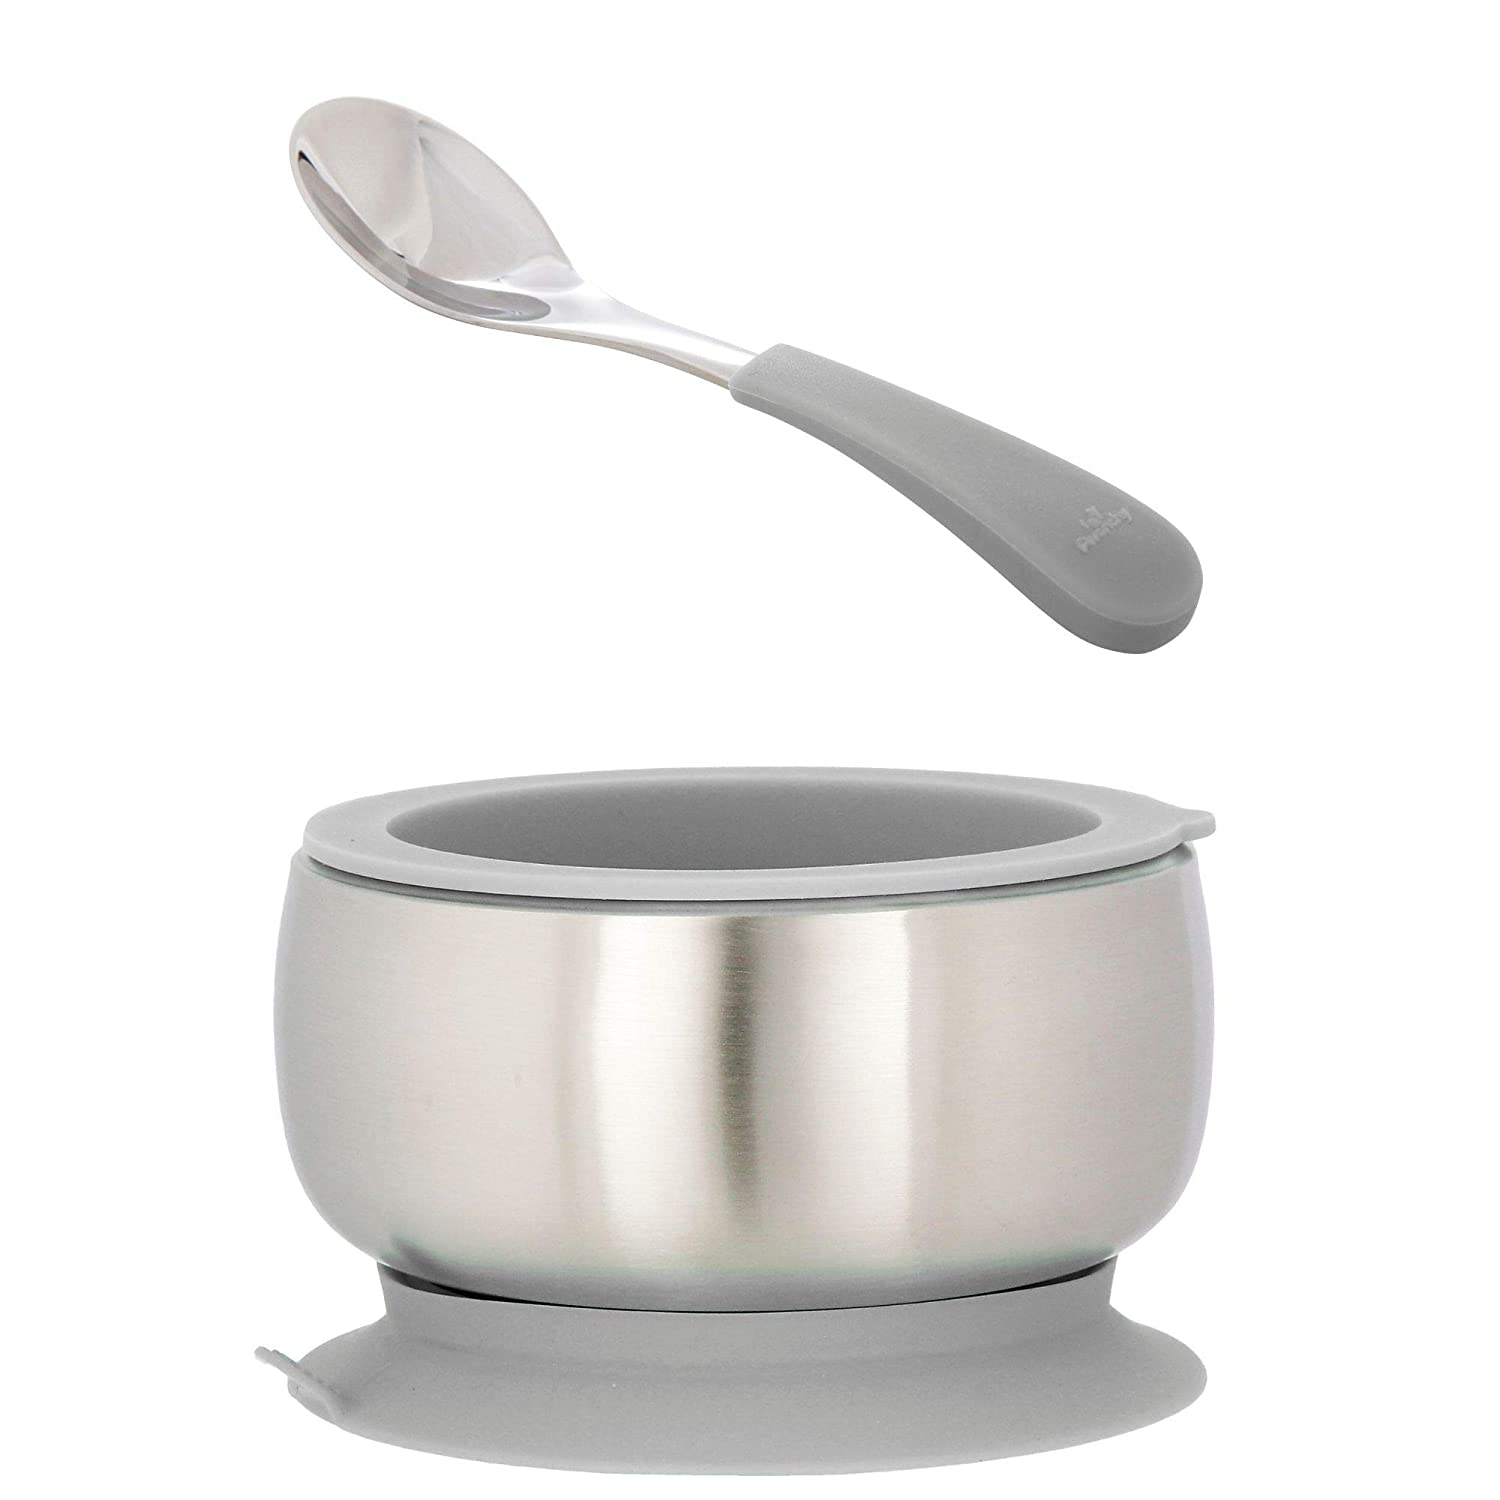 Avanchy Stainless Steel Baby Bowl with Spoon Combo - Stainless Steel Kids Bowls - Suction Bowls with Lids - Suction Bowl BPA Free - Stay Put Bowl (Gray, Baby)